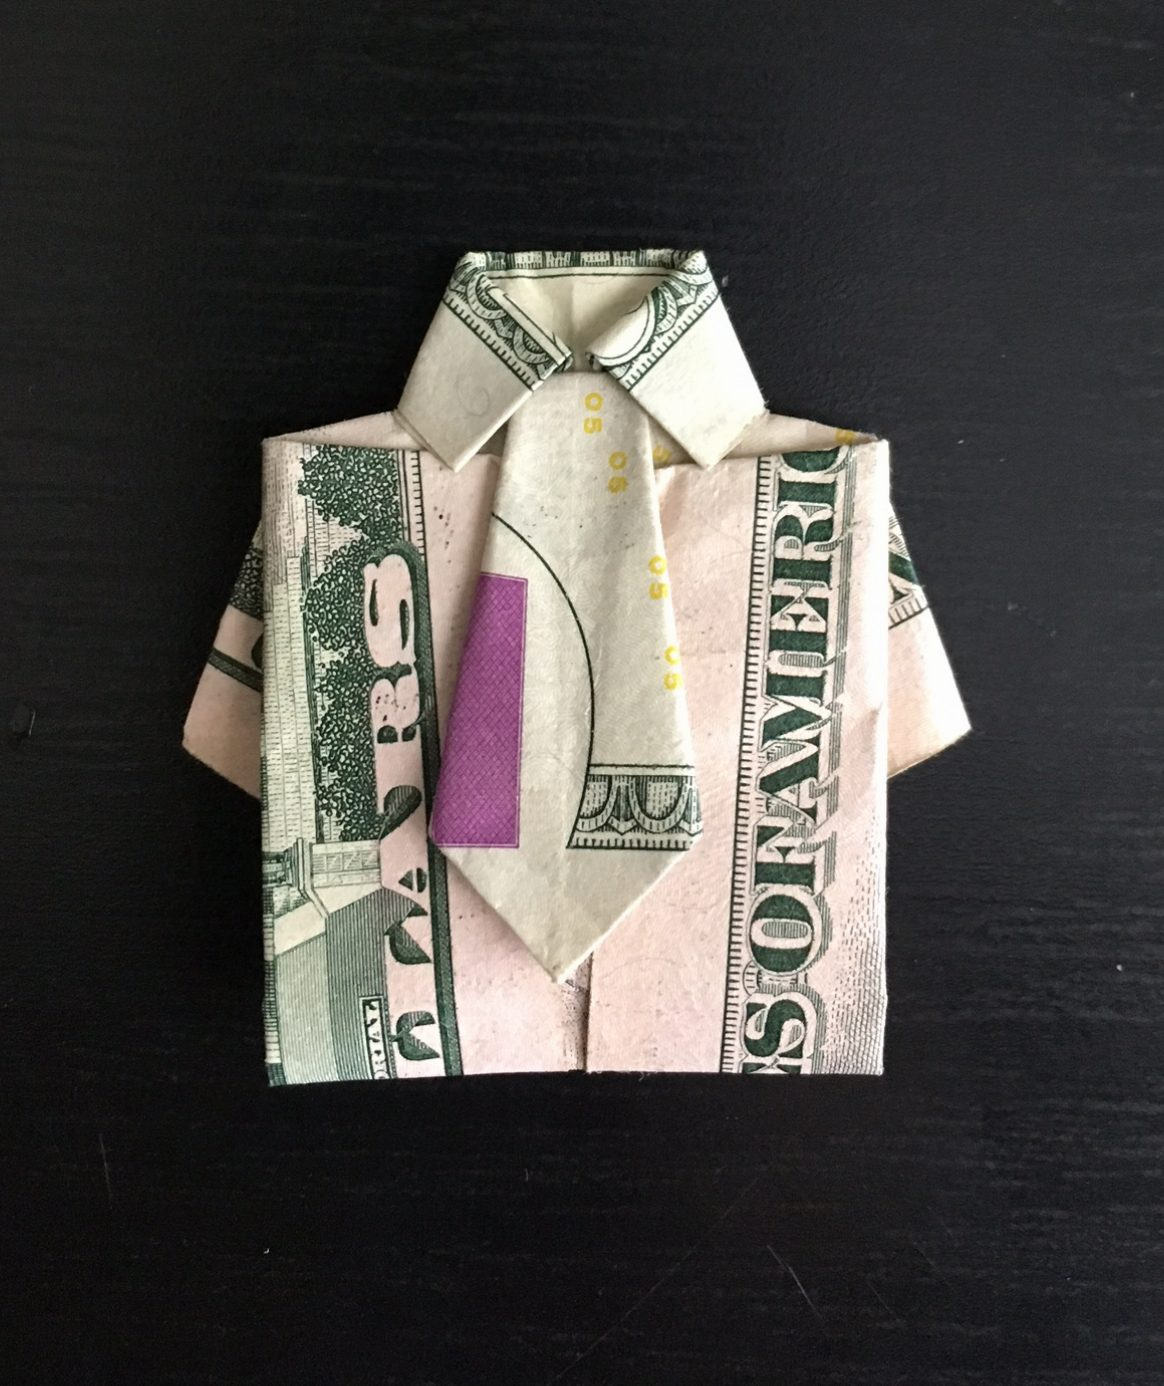 How to make origami shirt with tie out of dollar bill and ... - photo#17